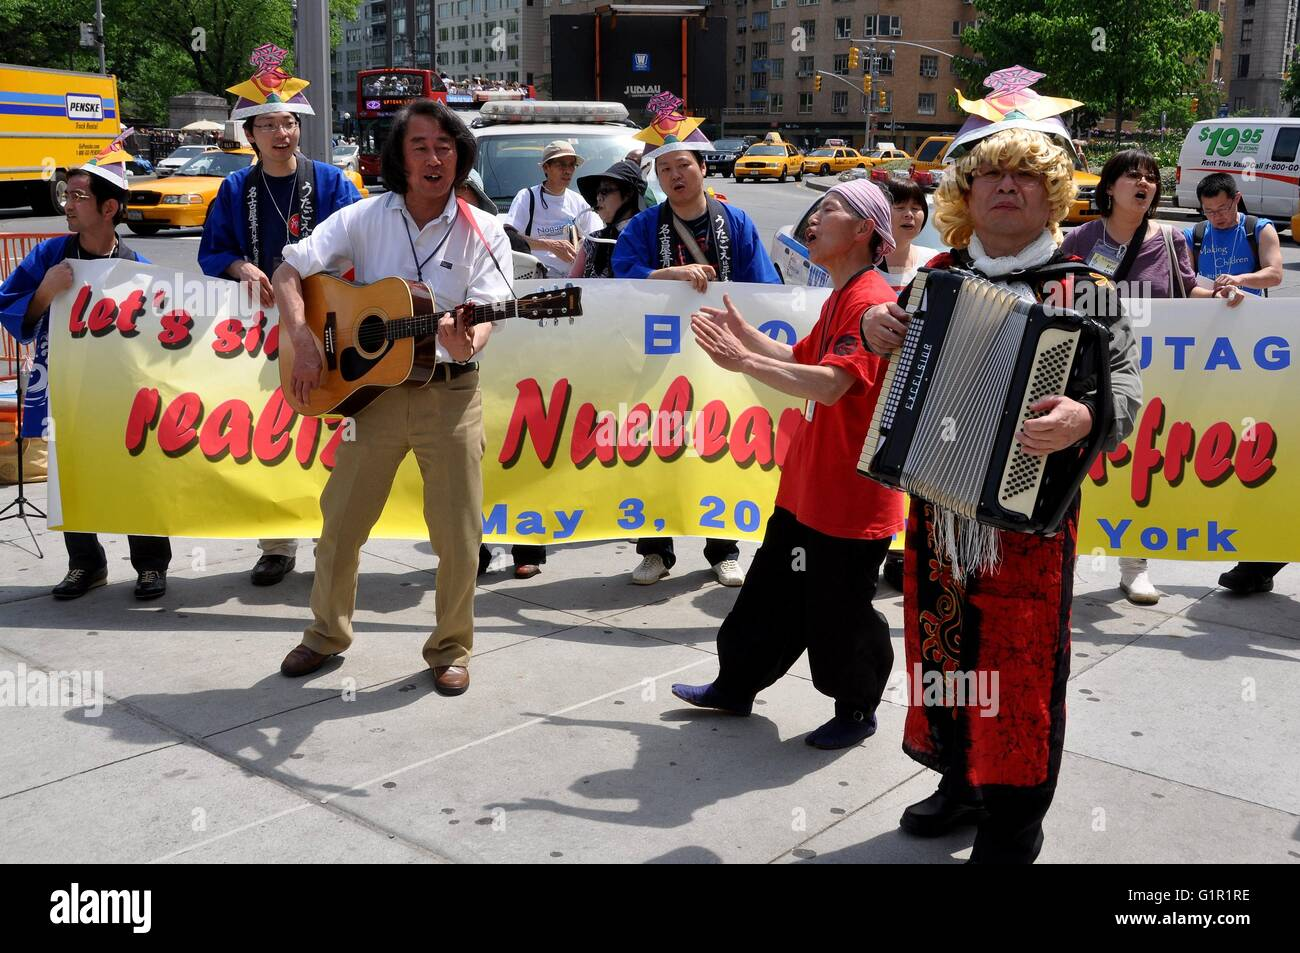 New York City:   Japanese musicians from UTAGOE singing at Columbus Circle during a demonstration for a nuclear - Stock Image